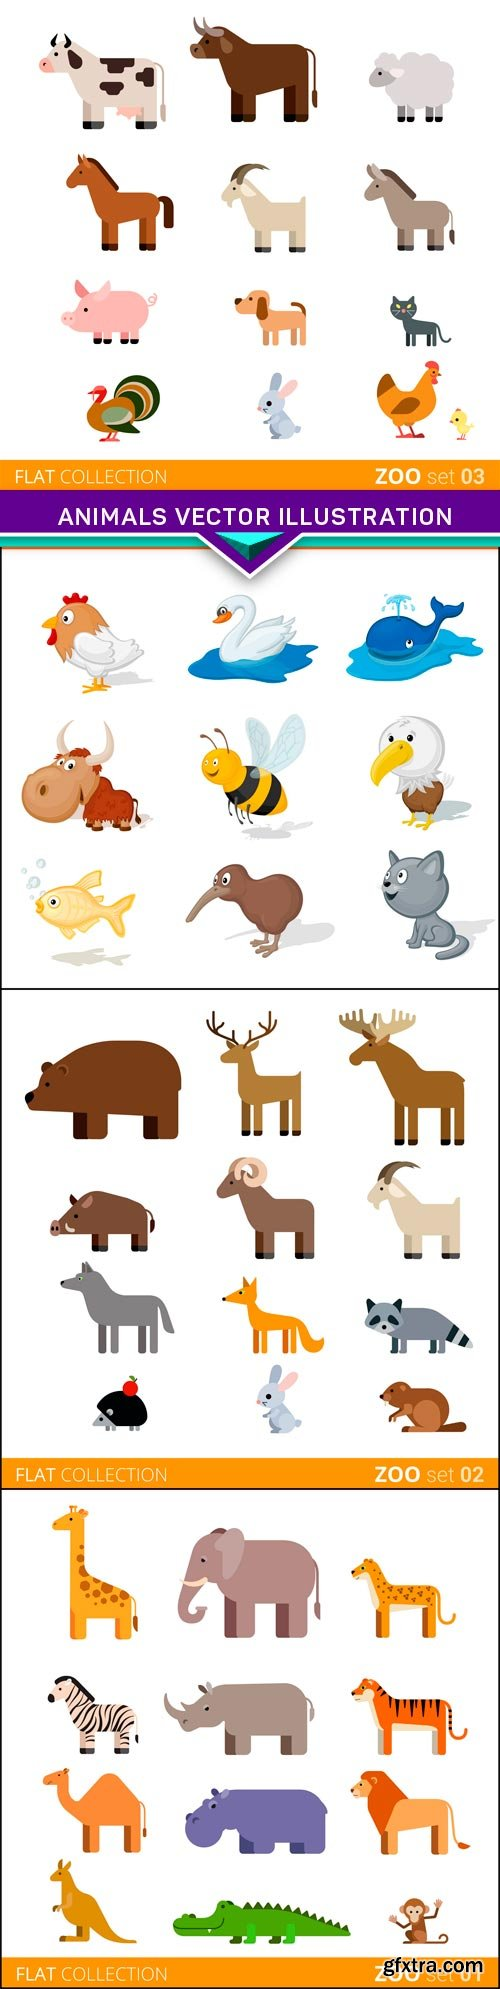 Collection of animal vector illustration 4x EPS